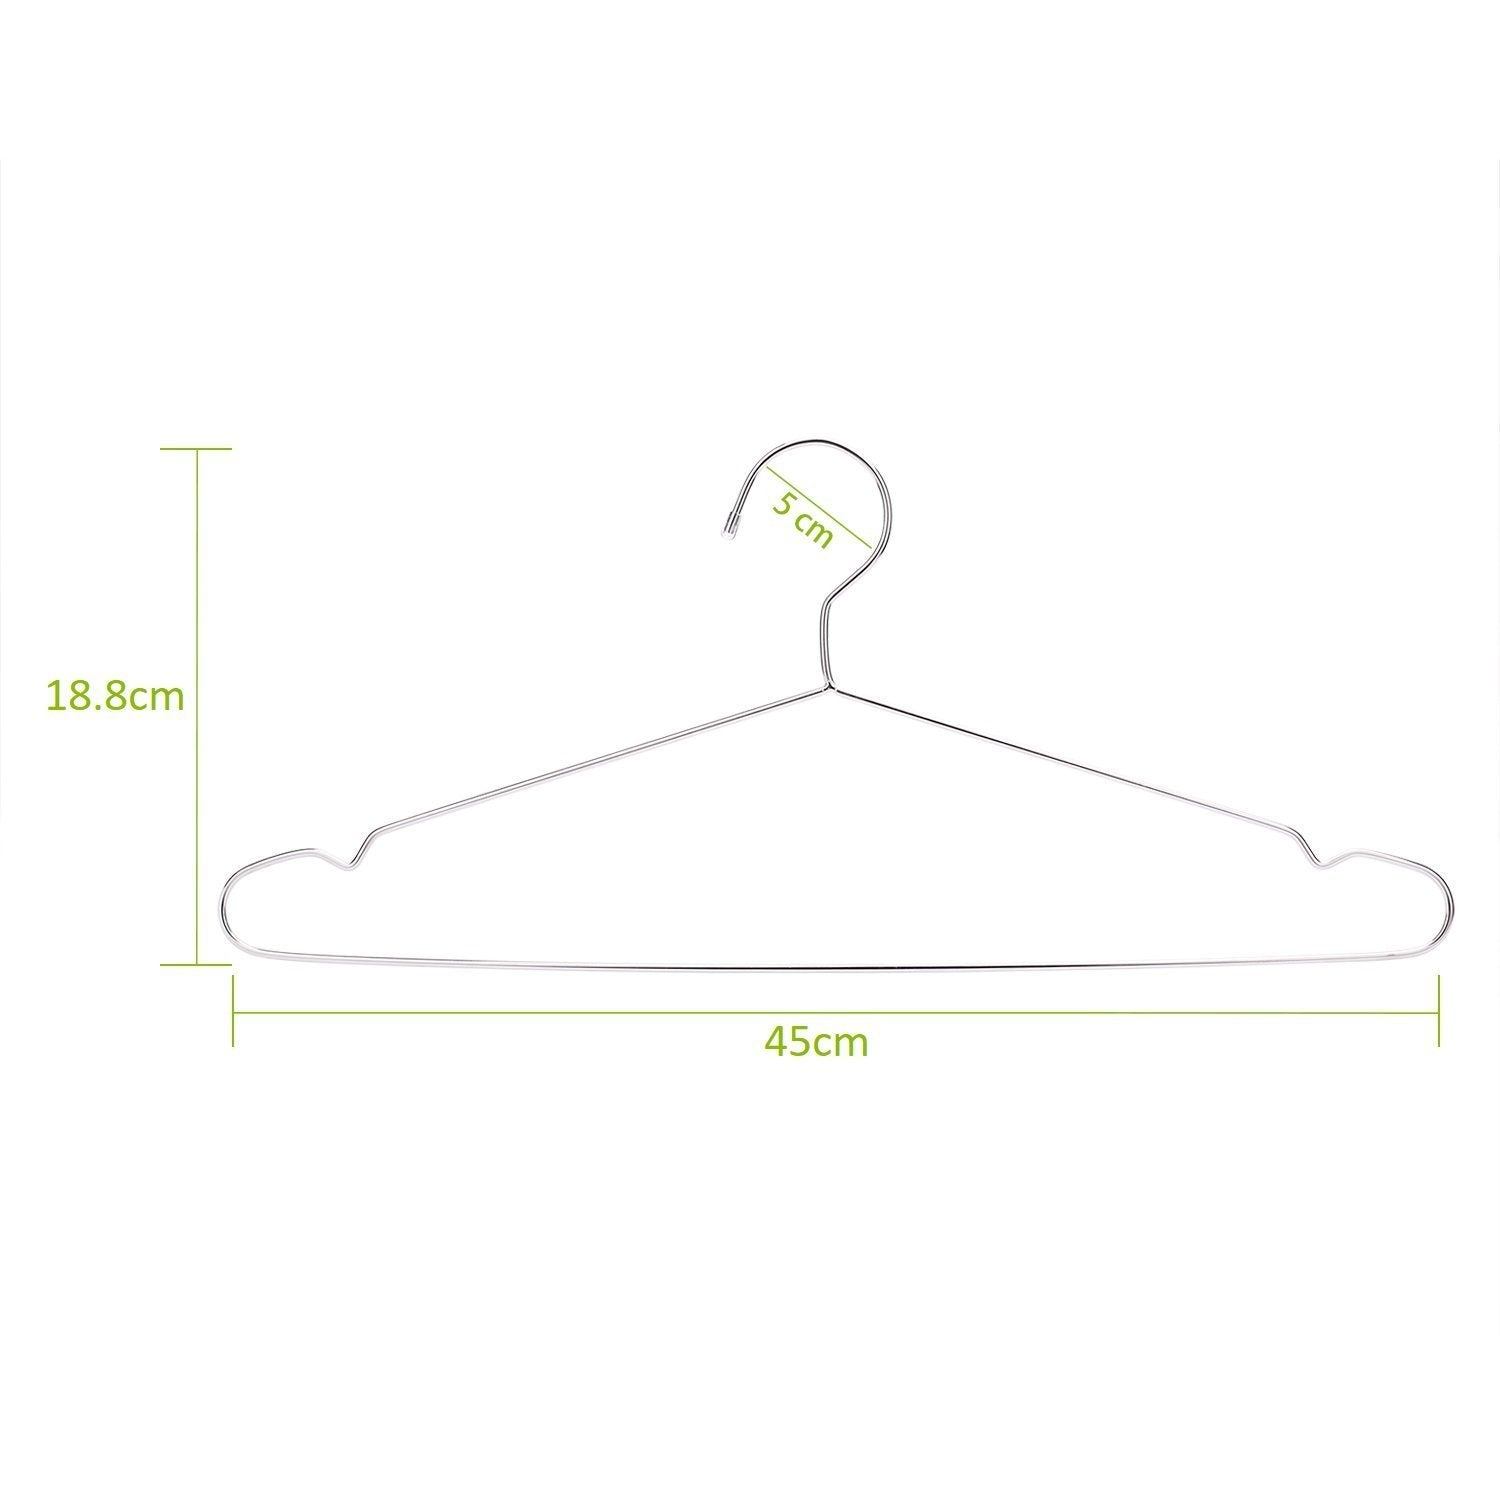 Save jetdio 17 7 stainless steel strong metal wire hangers clothes hangers coat hanger standard suit hangers everyday use hangers 30 pack